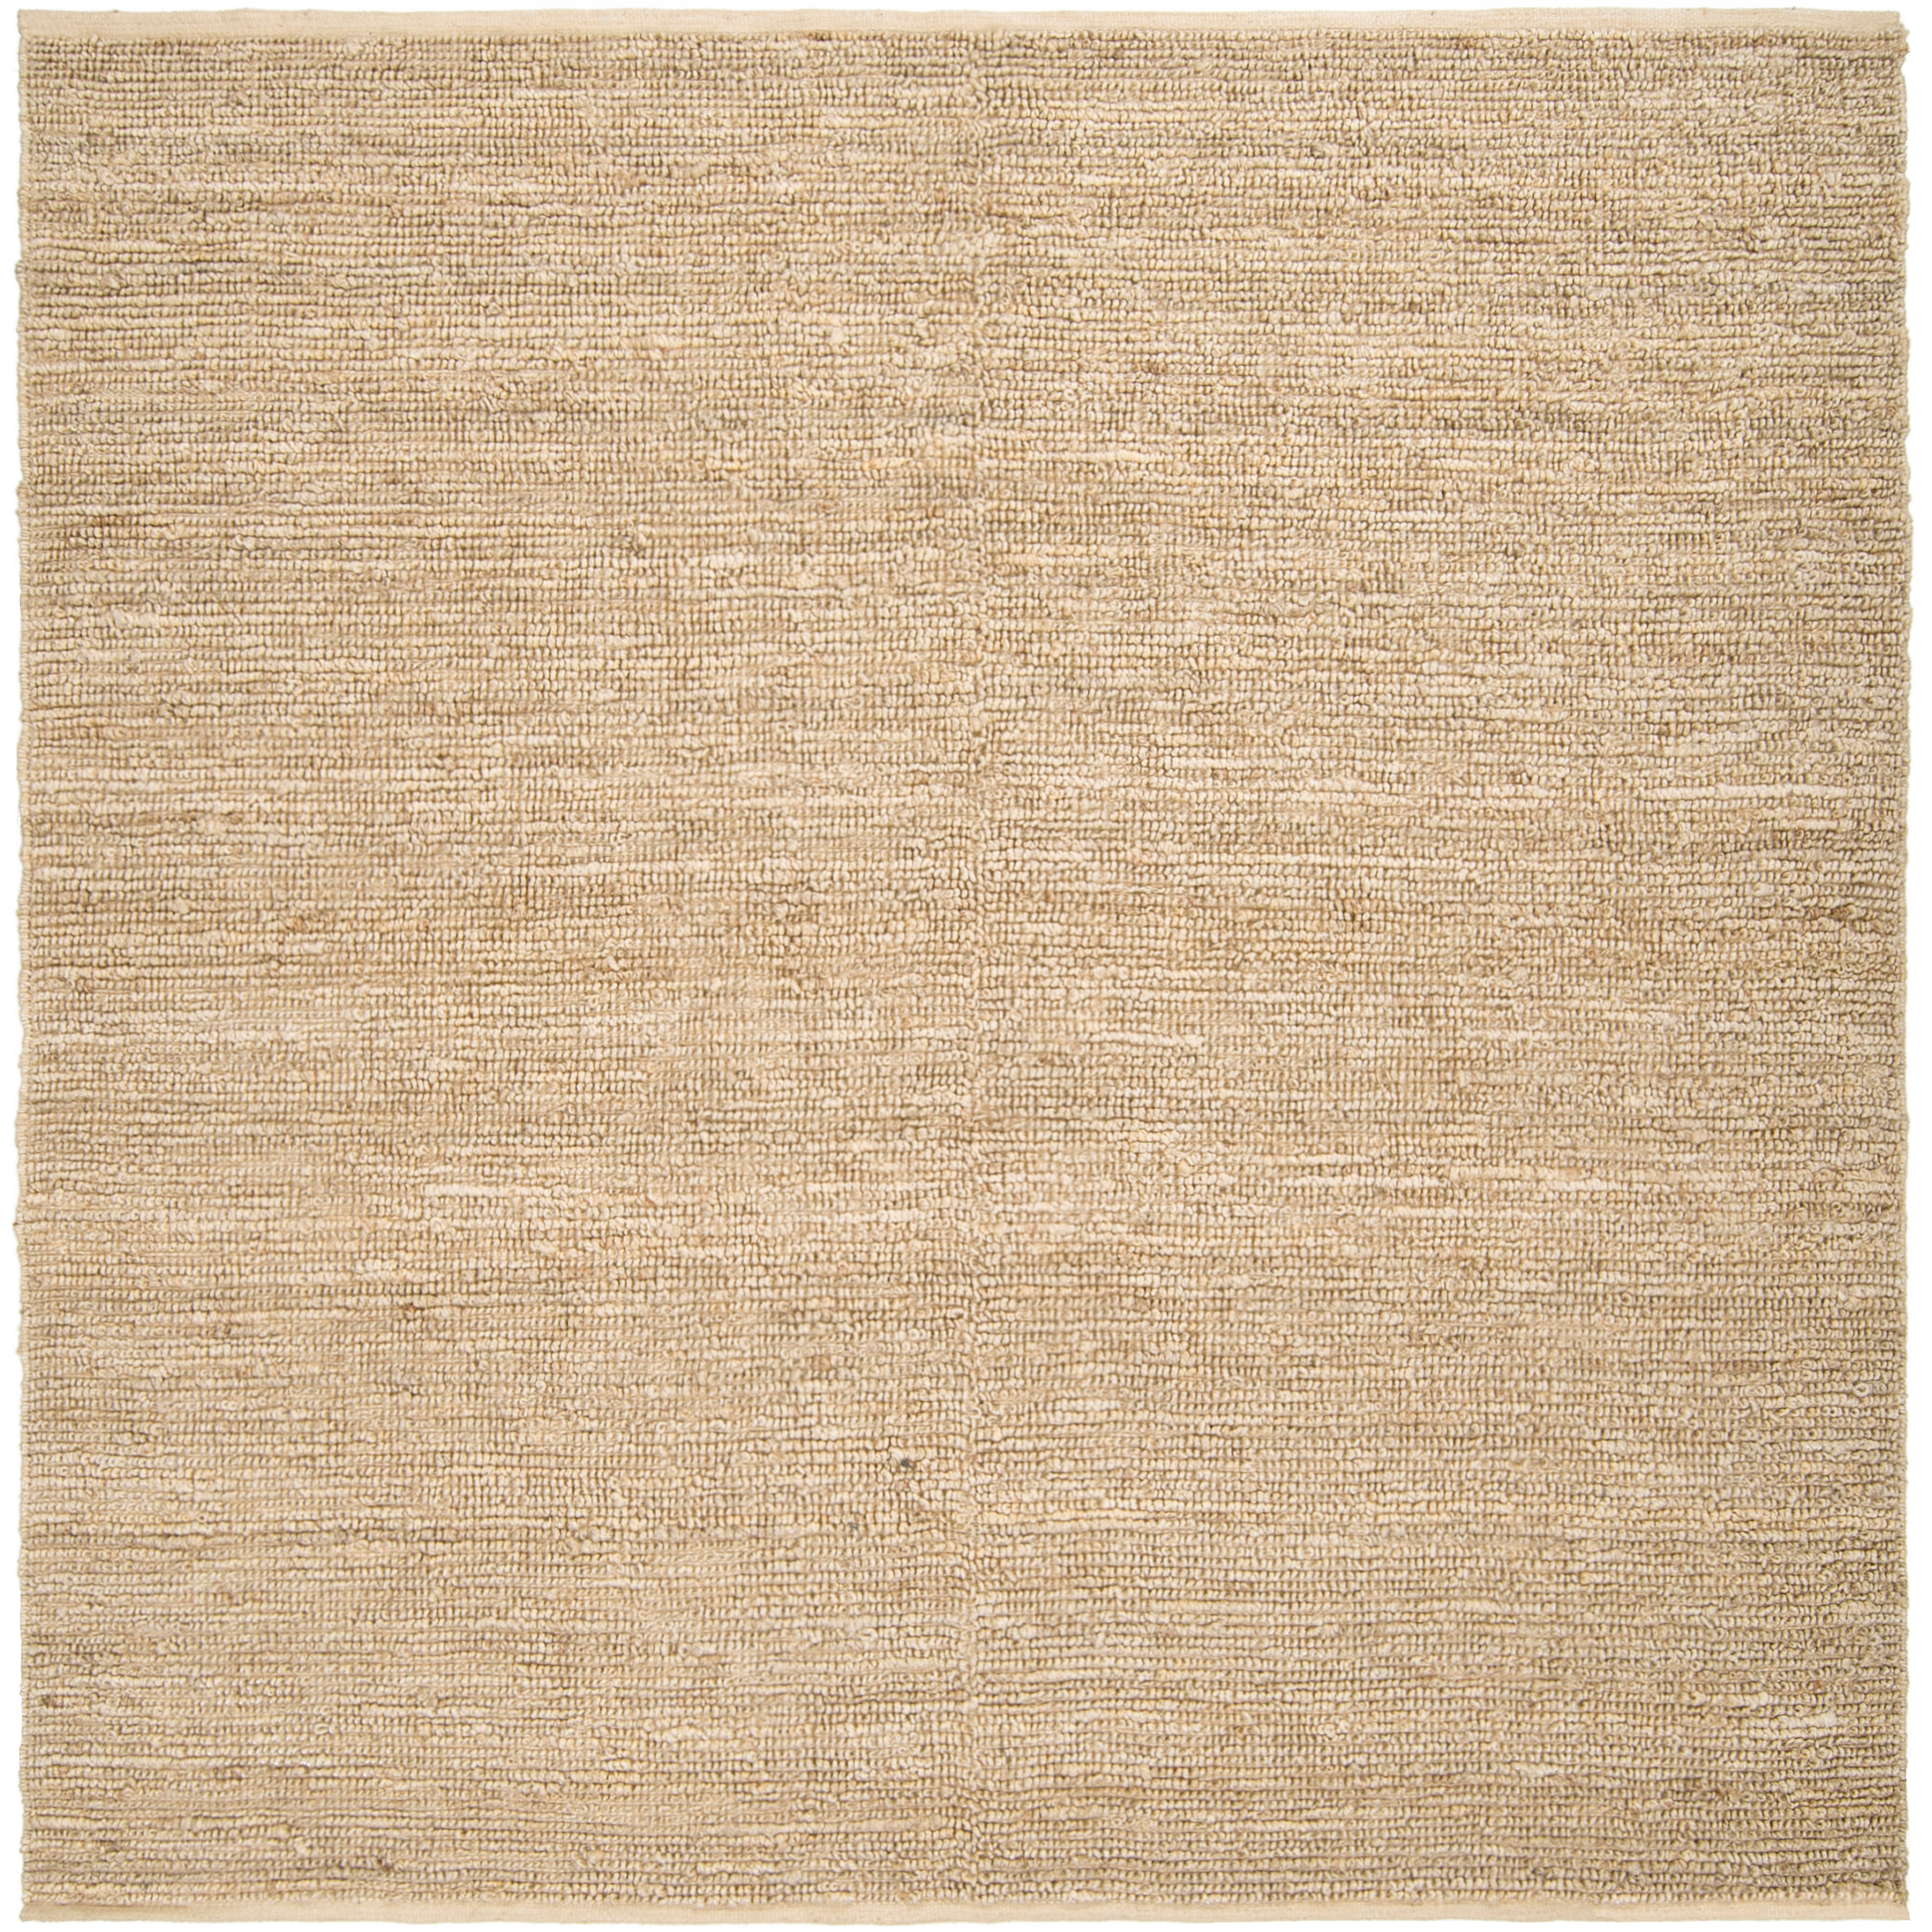 Square Rugs 7x7 | Square Area Rugs 7x7 | 7x7 Square Rug